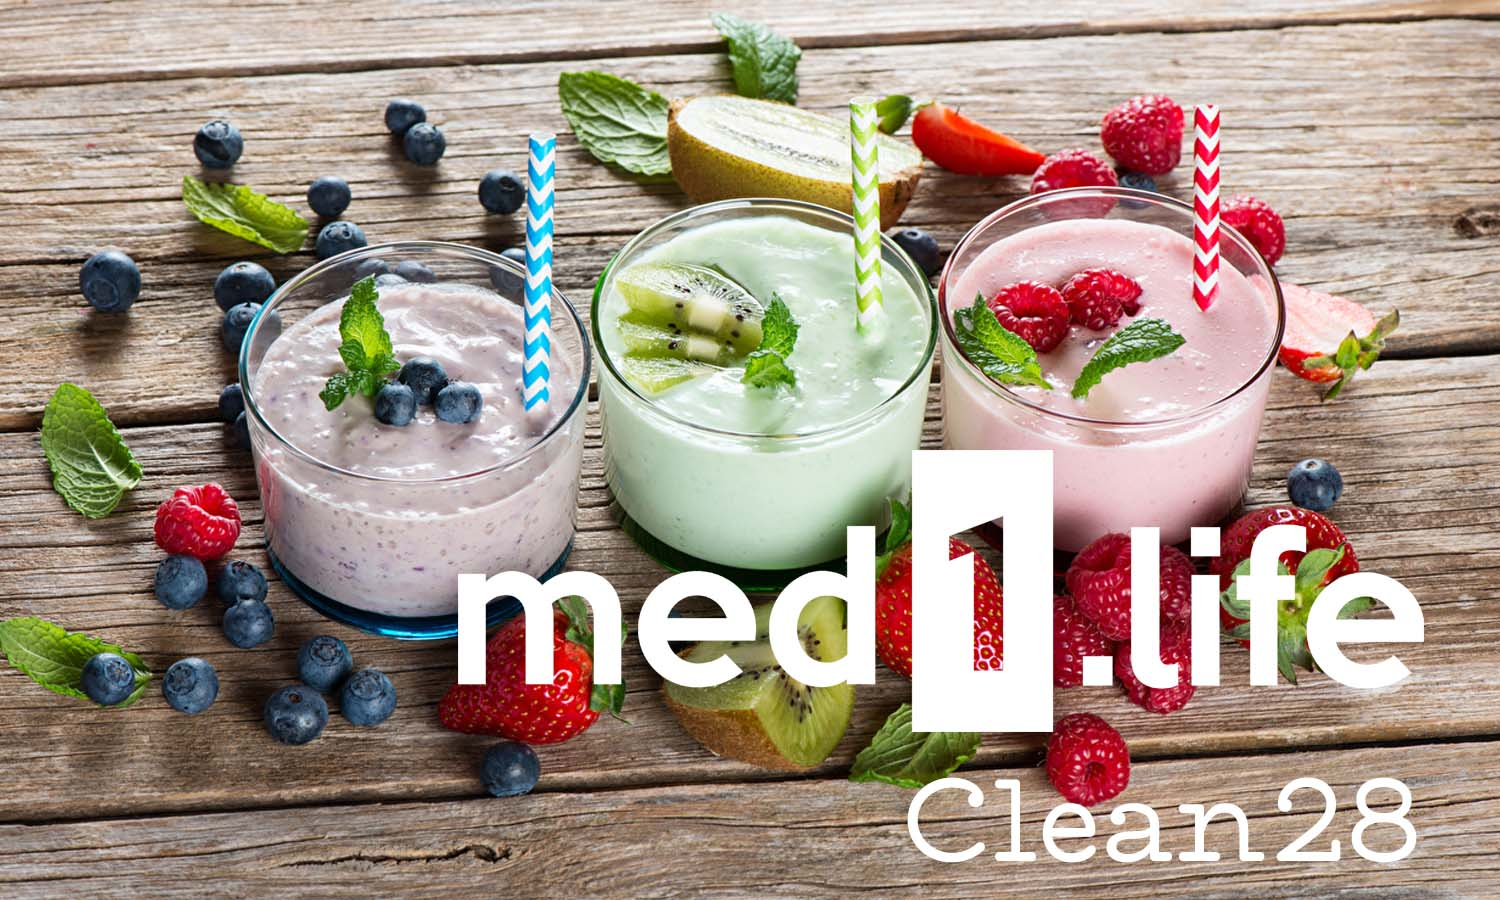 Click here to learn more about Clean28